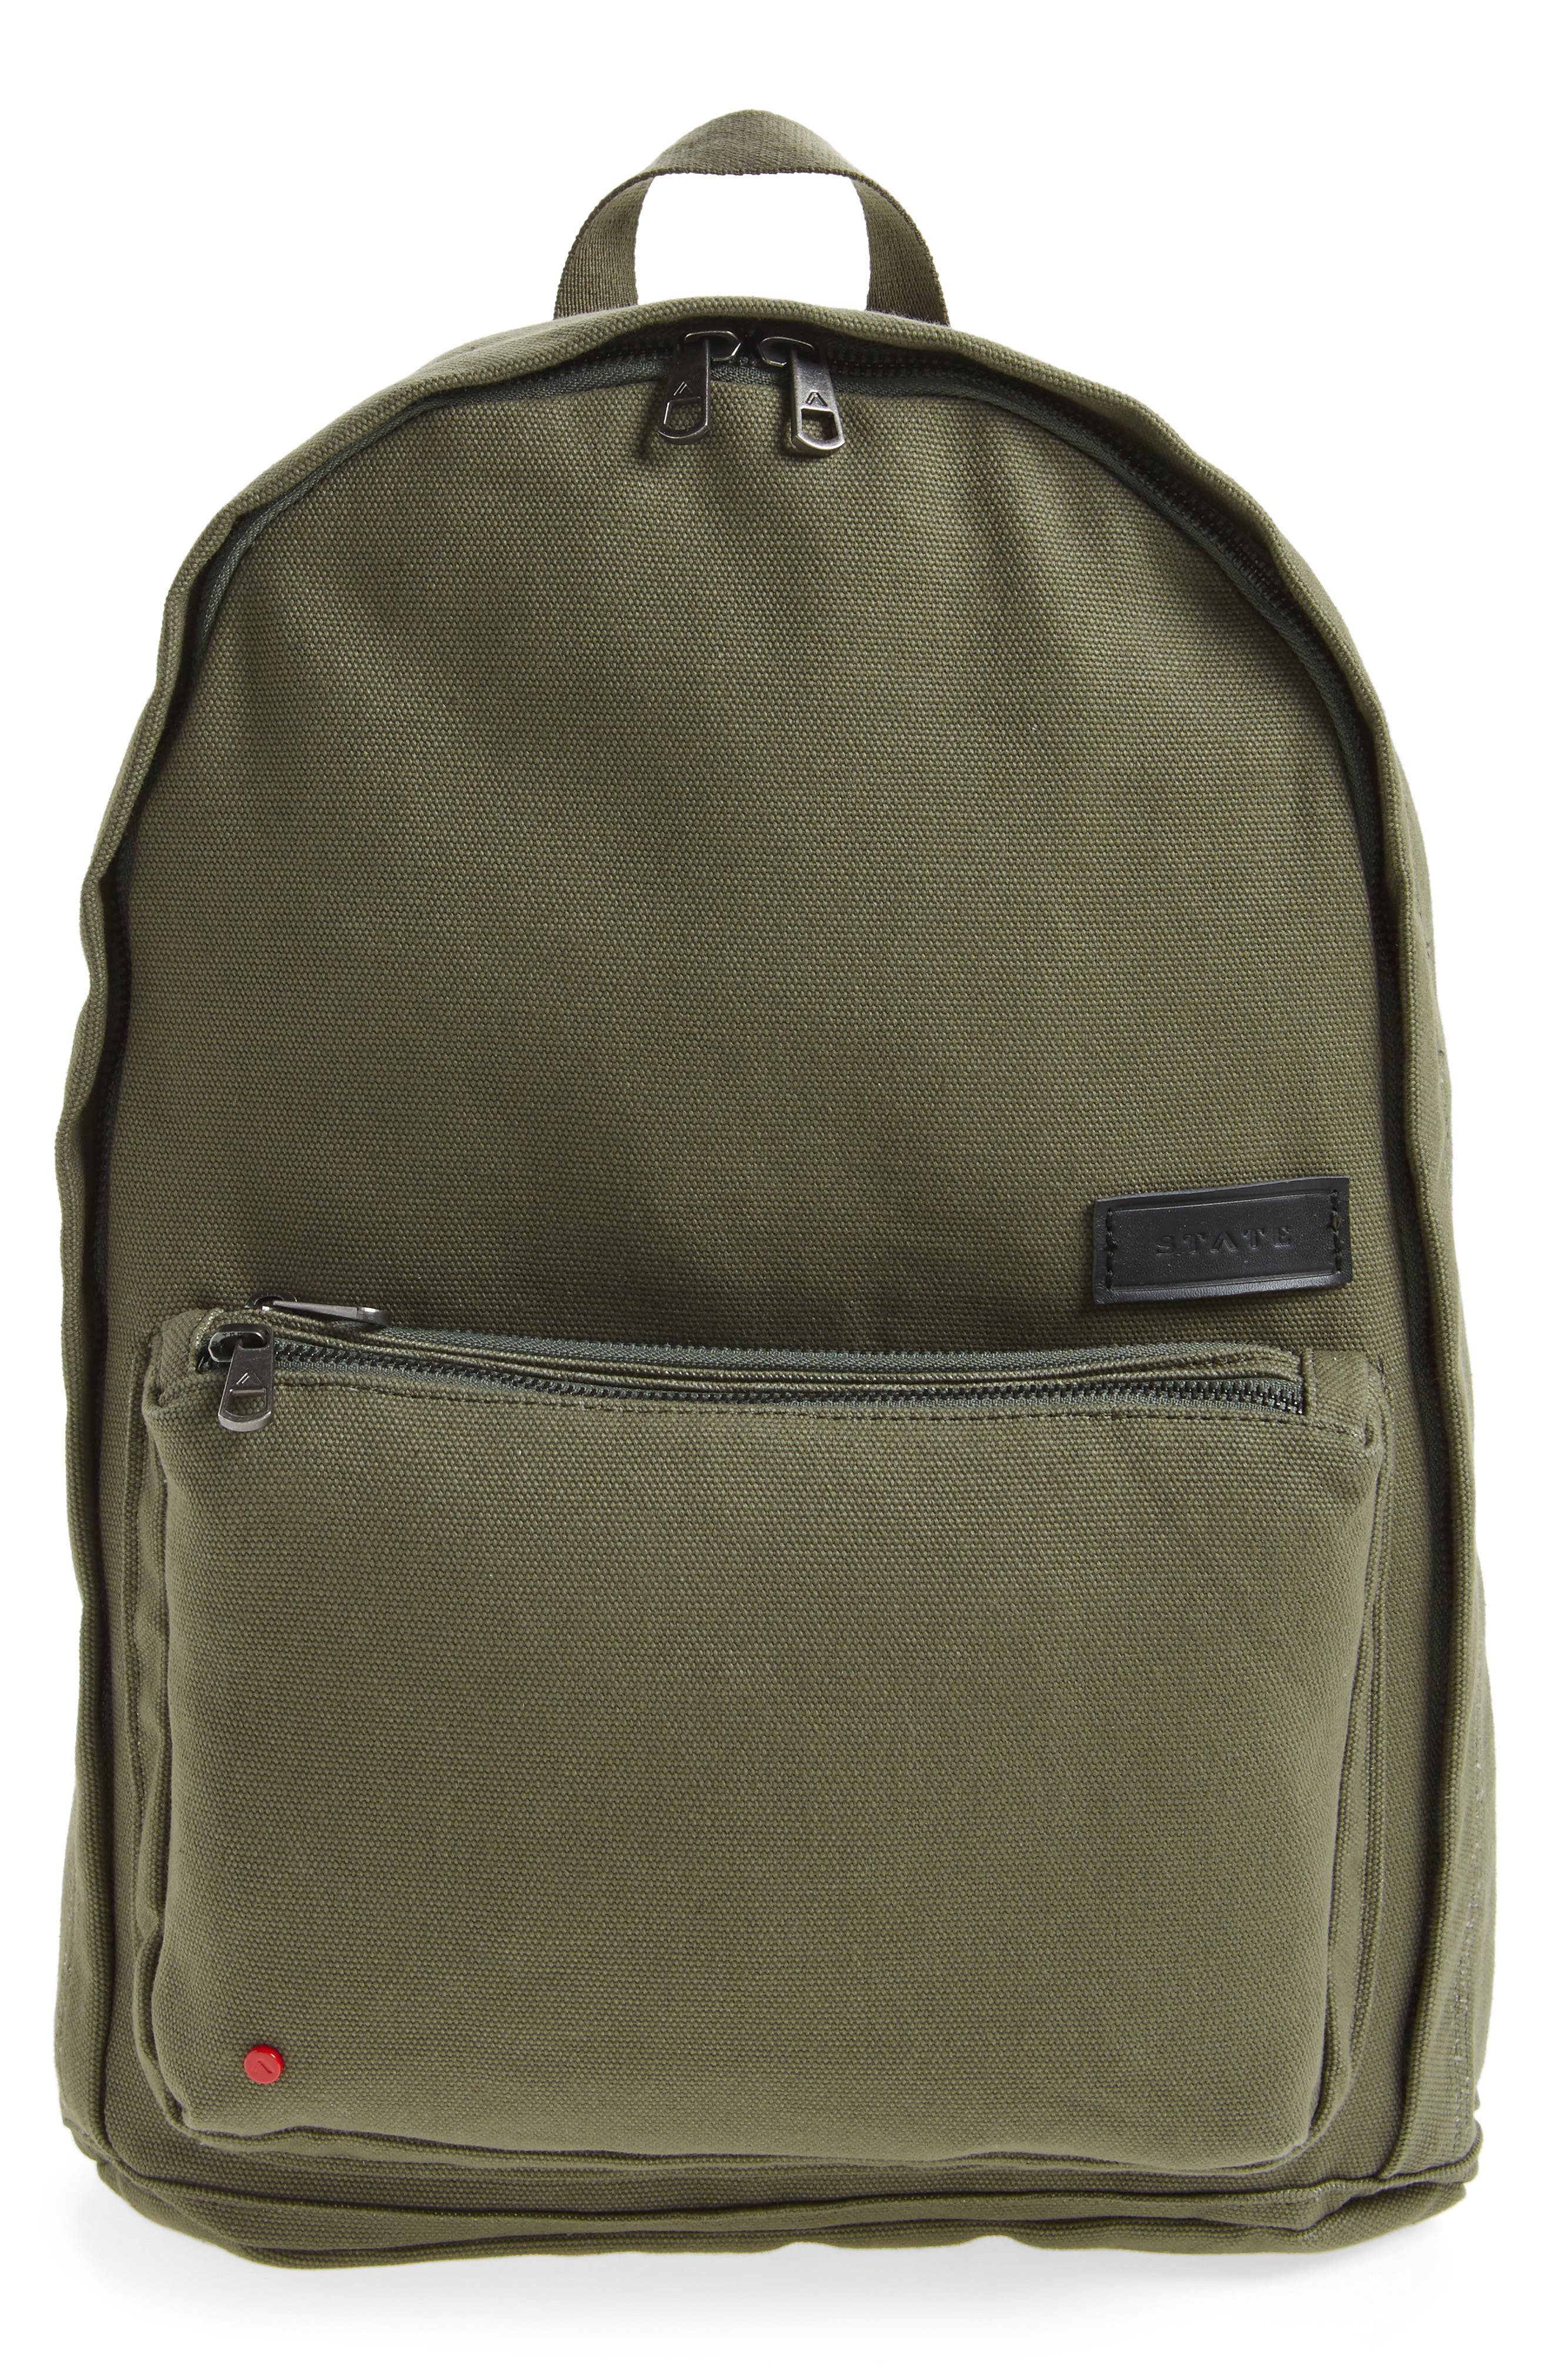 STATE Bags Park Slope Lorimer Water Resistant Canvas Backpack